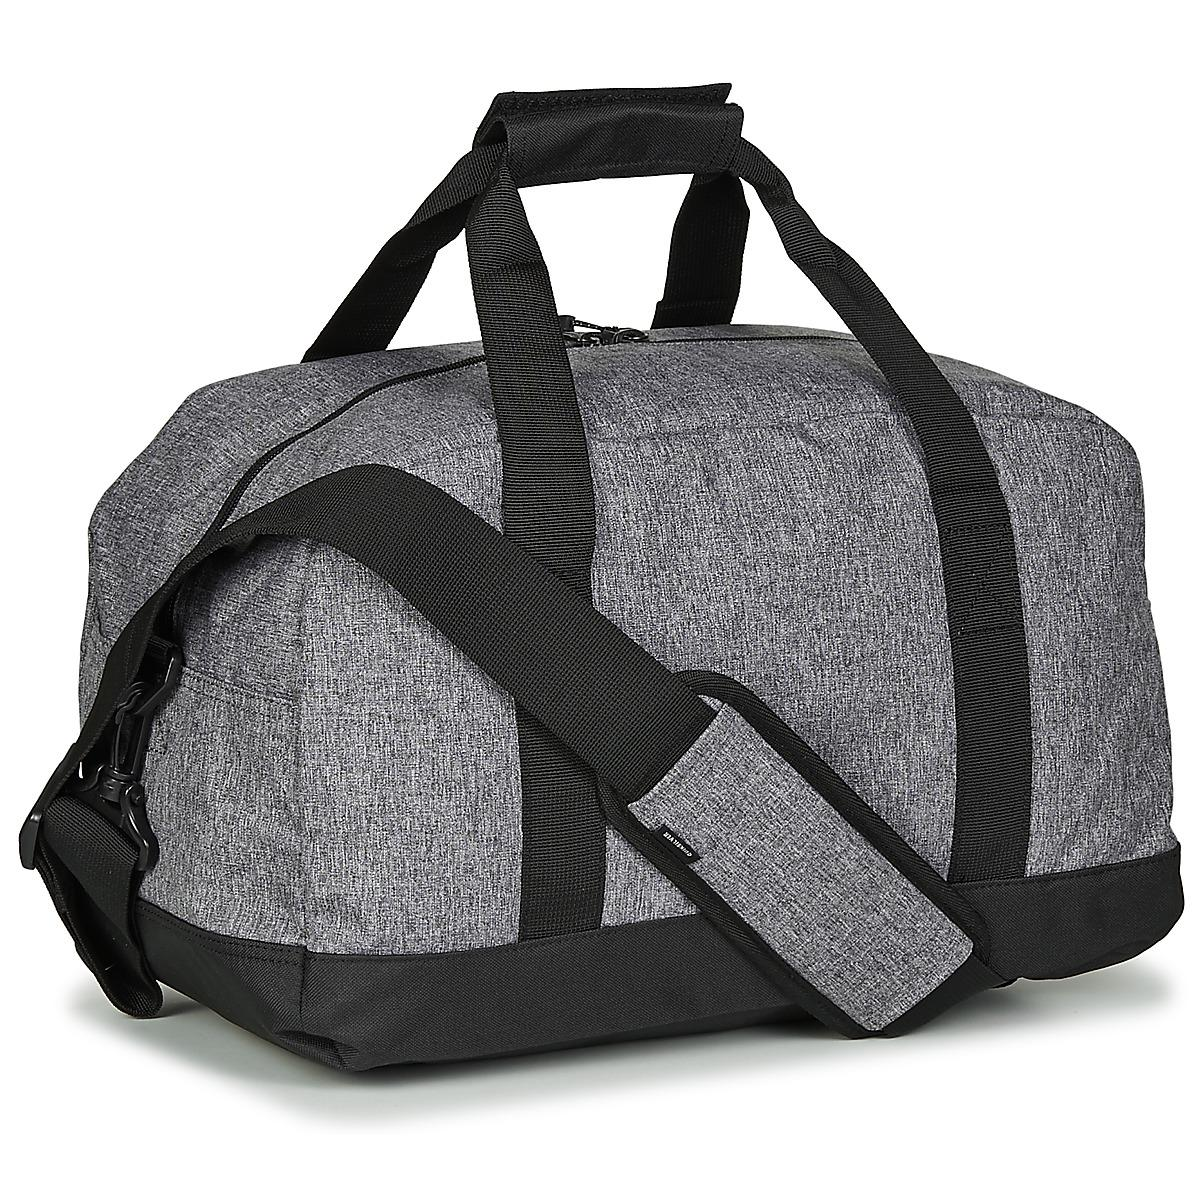 49a82aea7de Quiksilver Small Shelter Men s Travel Bag In Grey in Gray for Men - Lyst